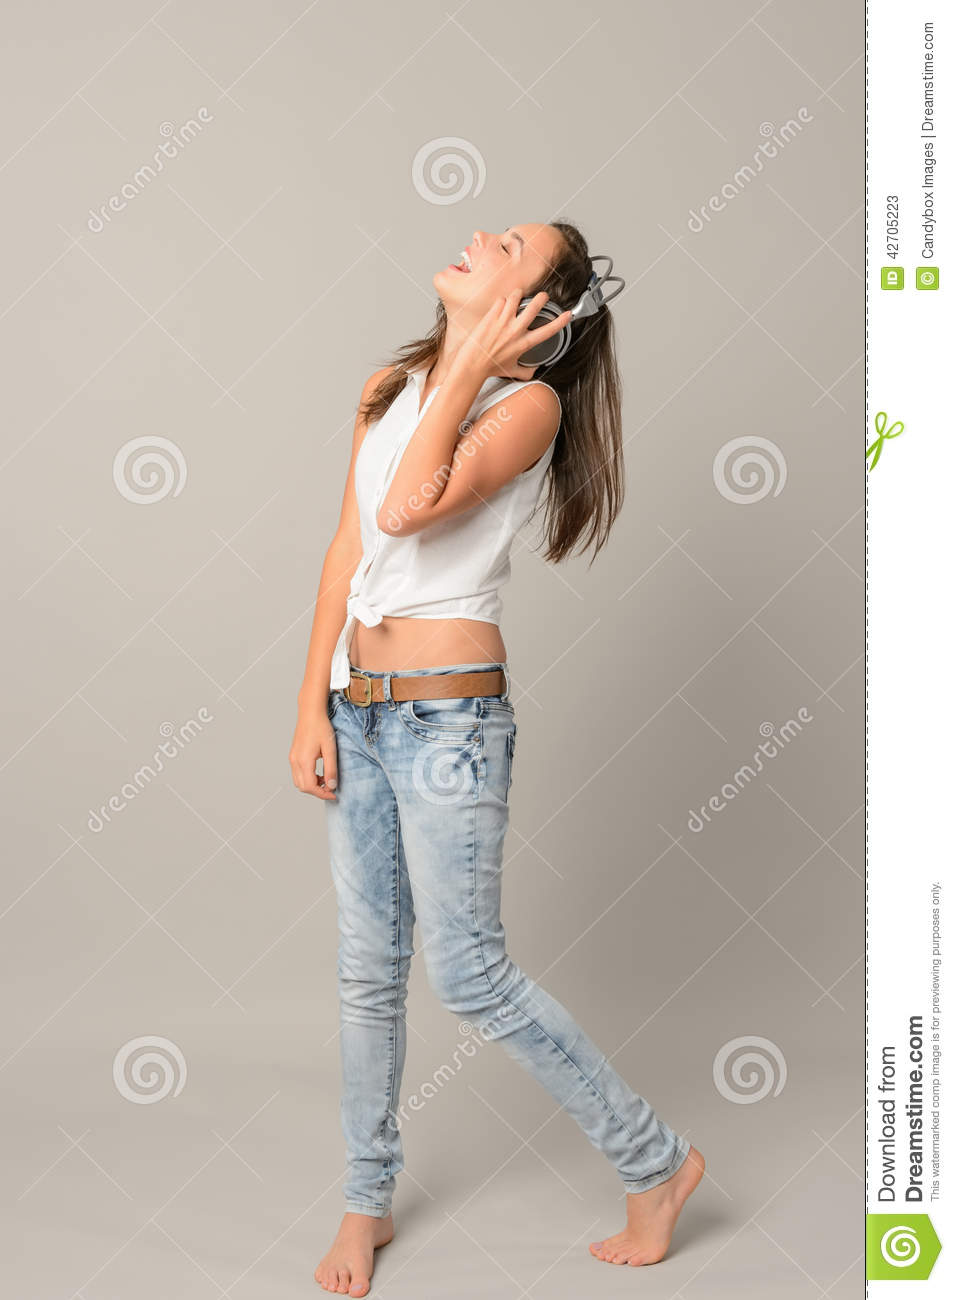 laughing girl with headphones stock image cartoondealer someone listening to music clipart boy listening to music clipart